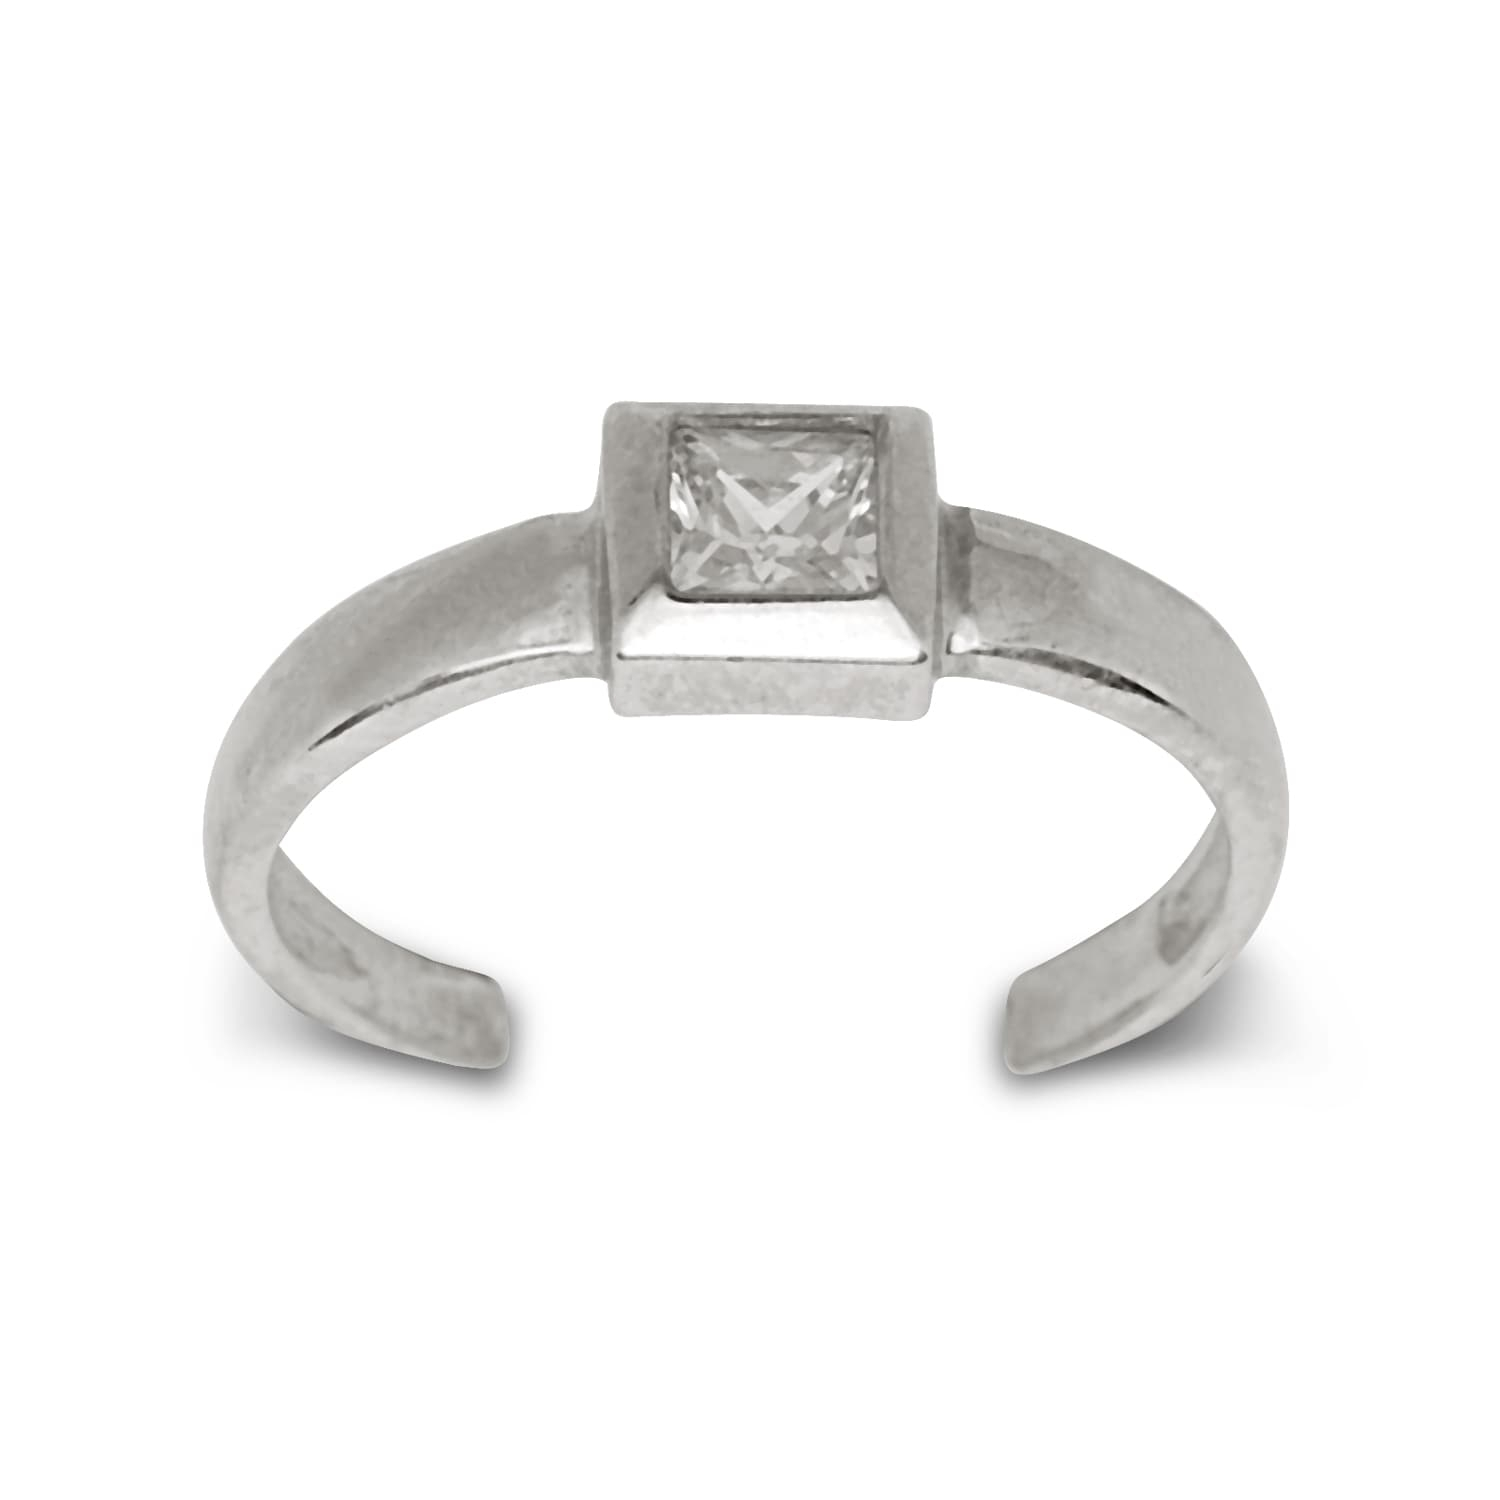 14K Yellow Or White Gold Adjustable Princess Cut Cubic Zirconia For Recent Toe Rings With Cubic Zirconia (View 4 of 15)